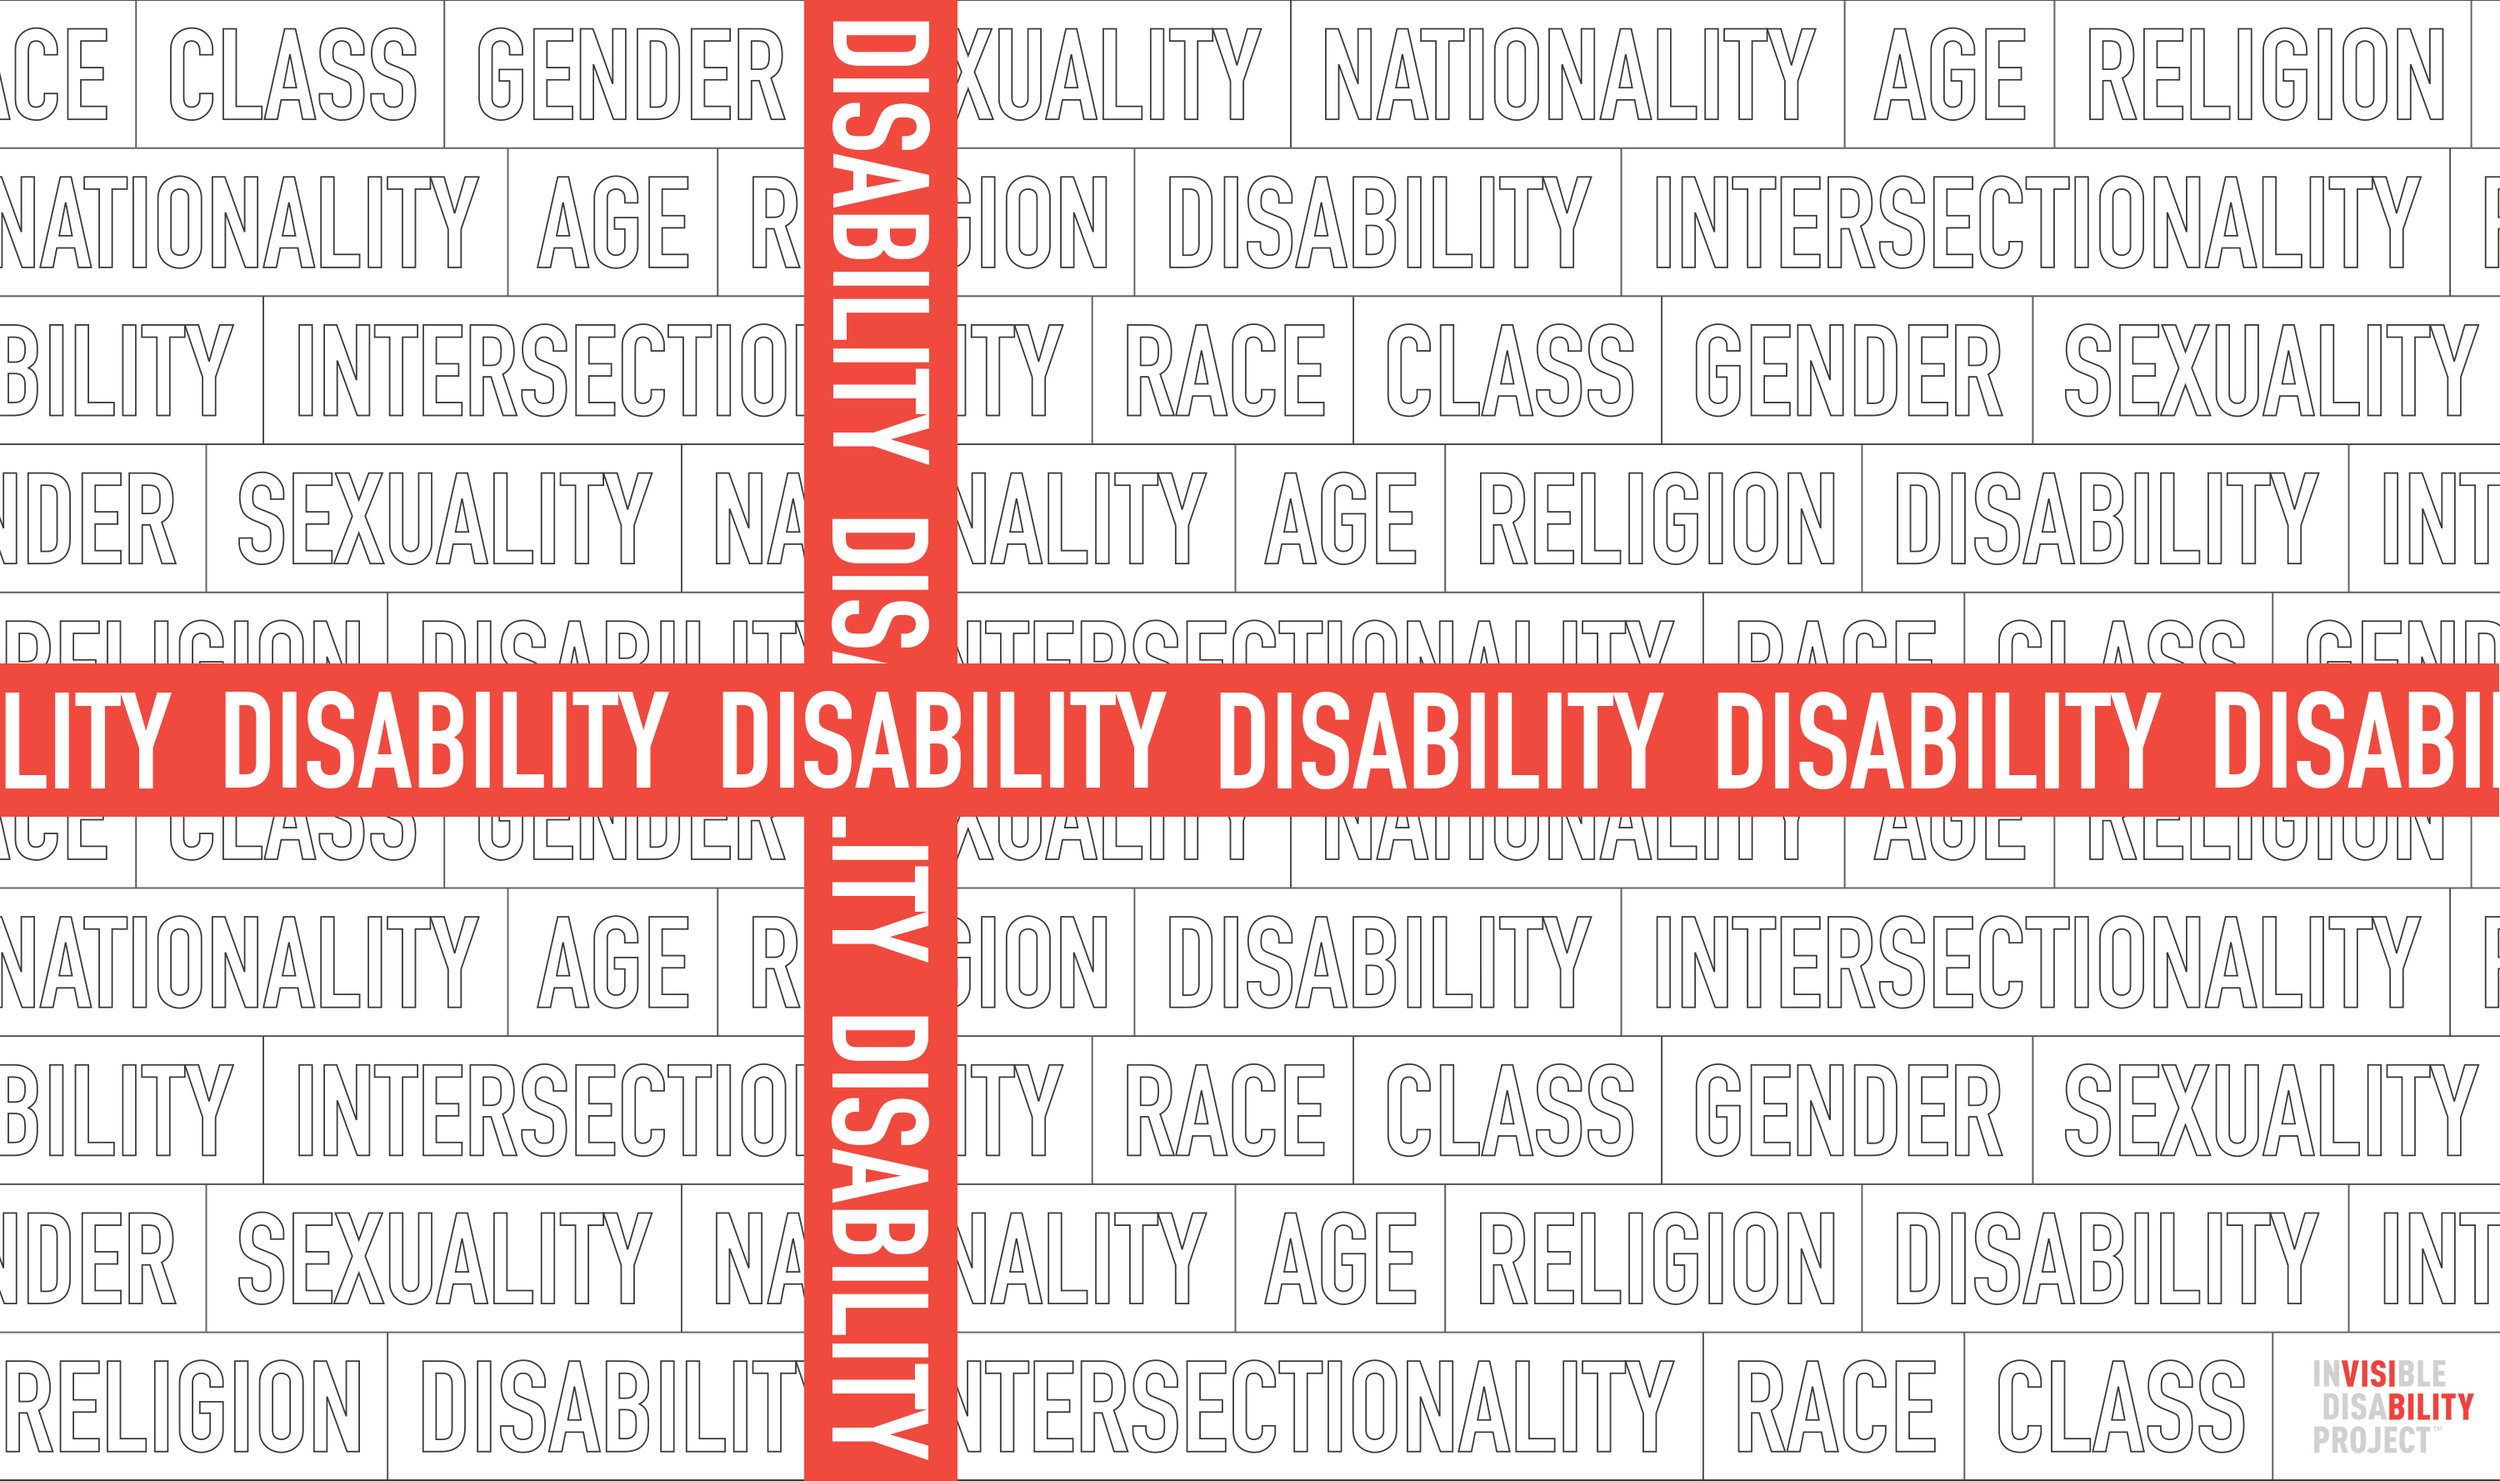 "The words ""Intersectionality, Race, Class, Gender, Sexuality, Nationality, Age, Religion, Disability"", are written in repeating white tiles. Overlaid on the tiles is a bright red ribbon printed with the word ""Disability"" in large white letters. The ribbon runs horizontally across the middle of the page, and then crosses vertically."